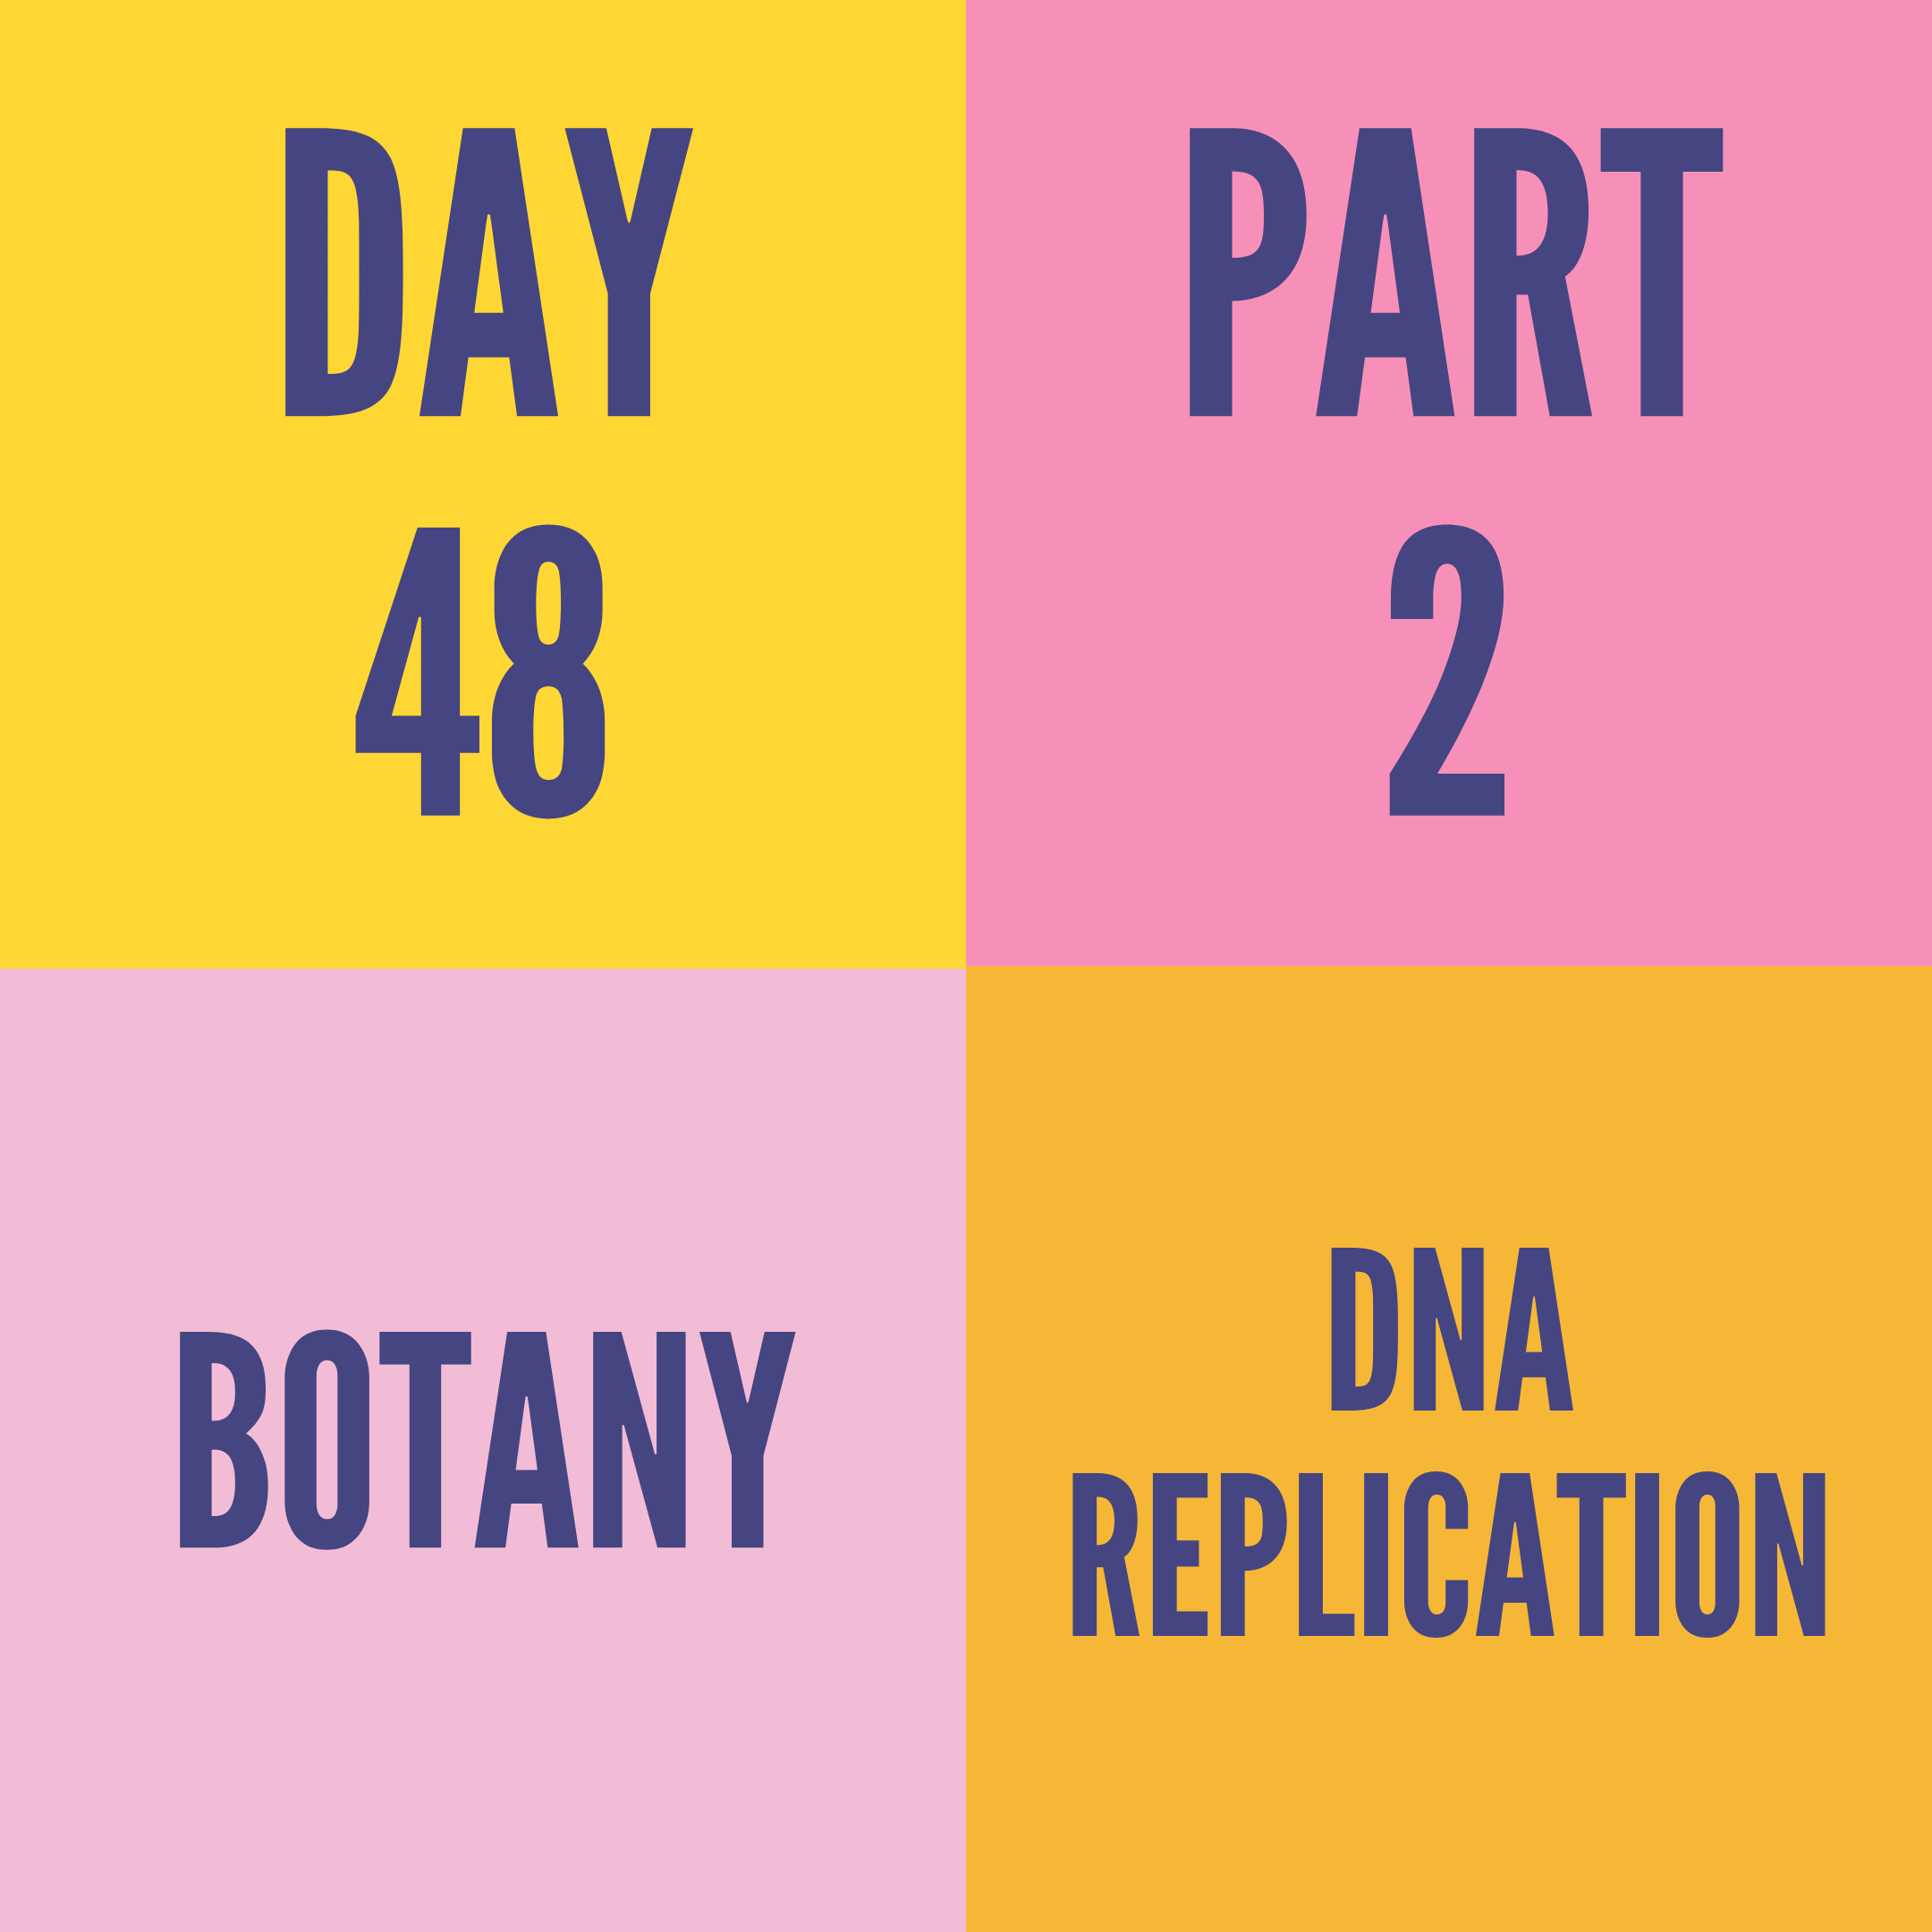 DAY-48 PART-2 DNA REPLICATION